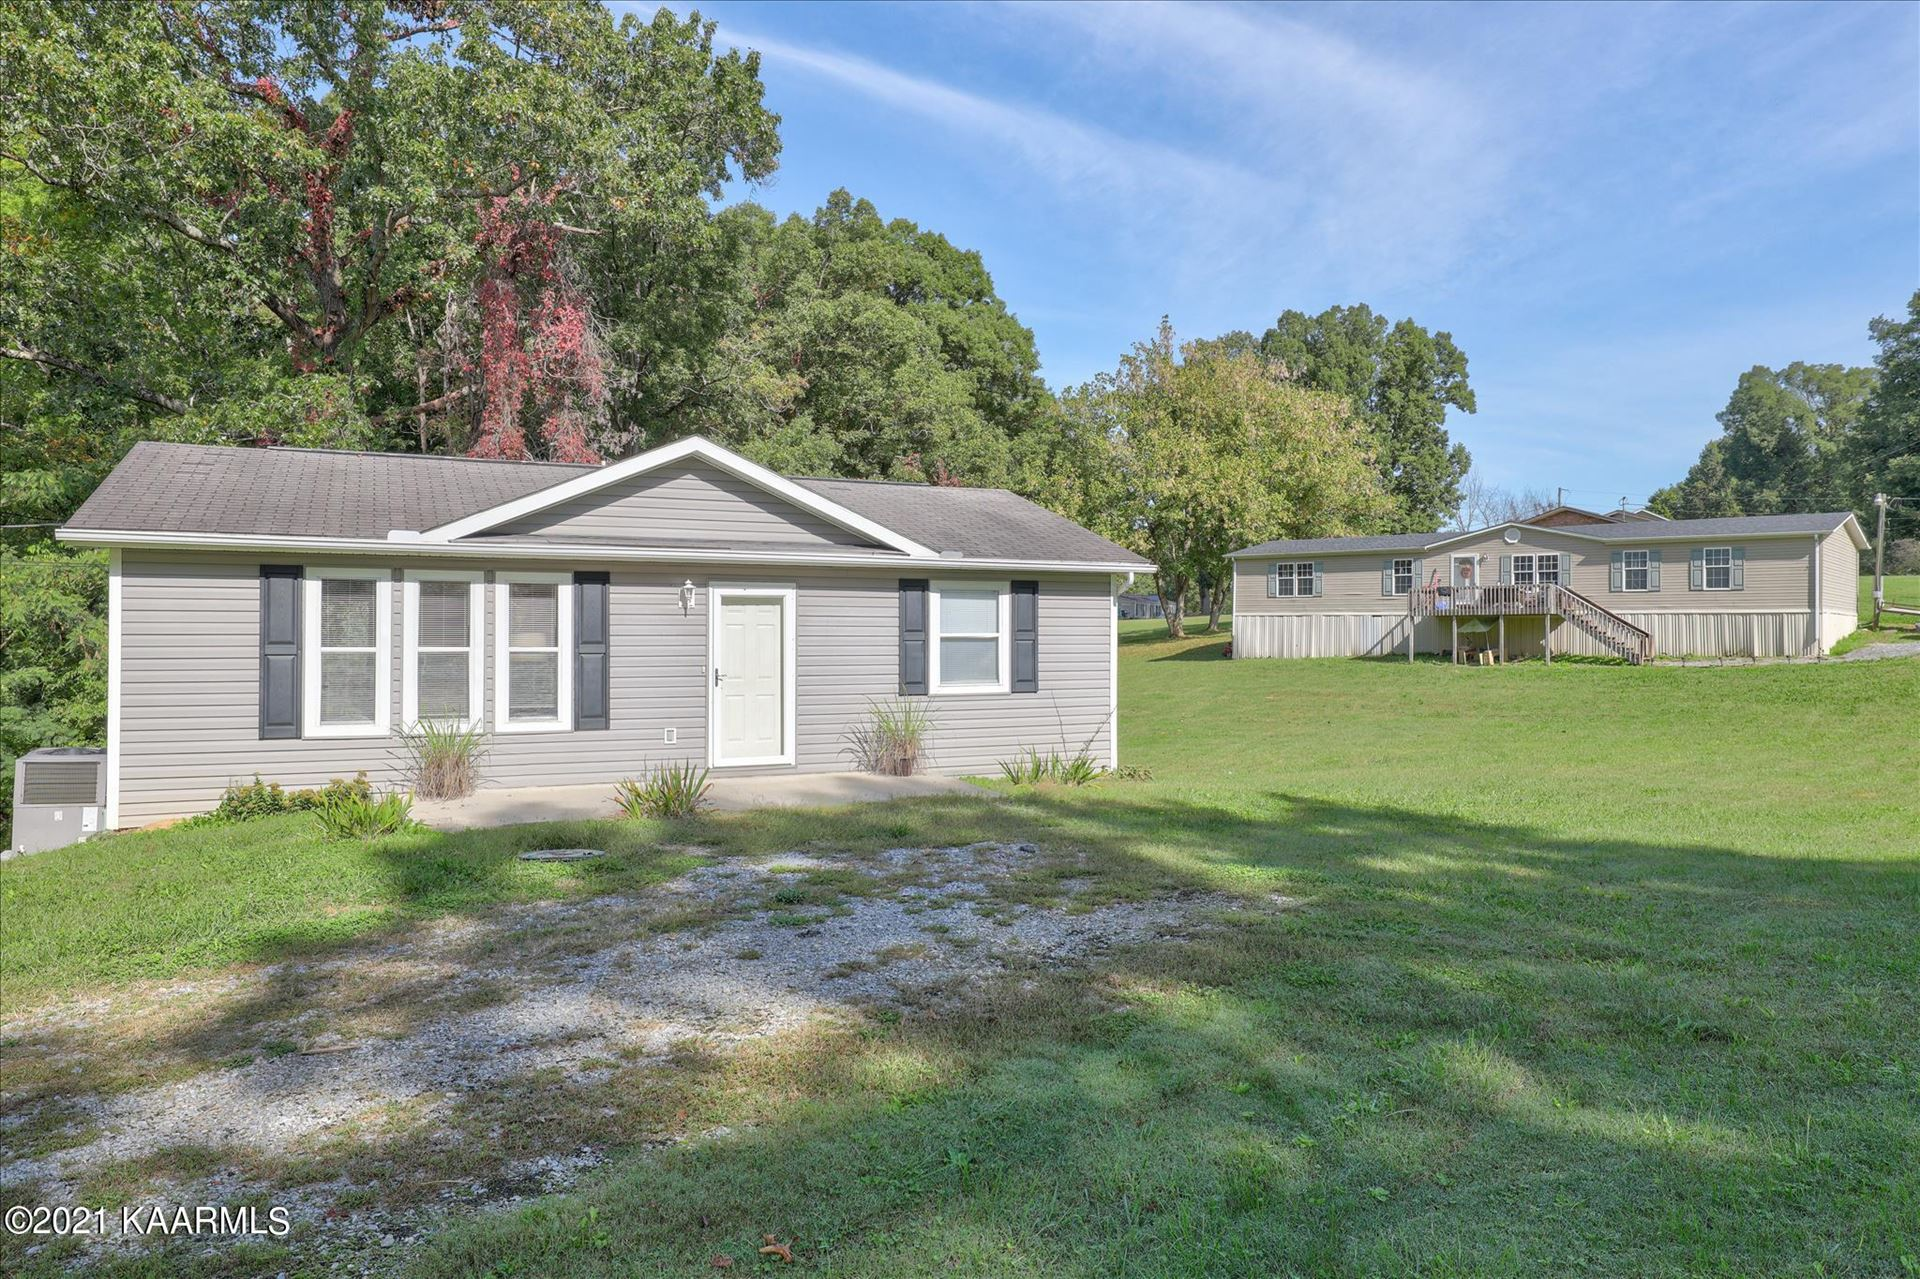 Photo of 2348 &2350 Old Newport Hwy, Sevierville, TN 37876 (MLS # 1170632)